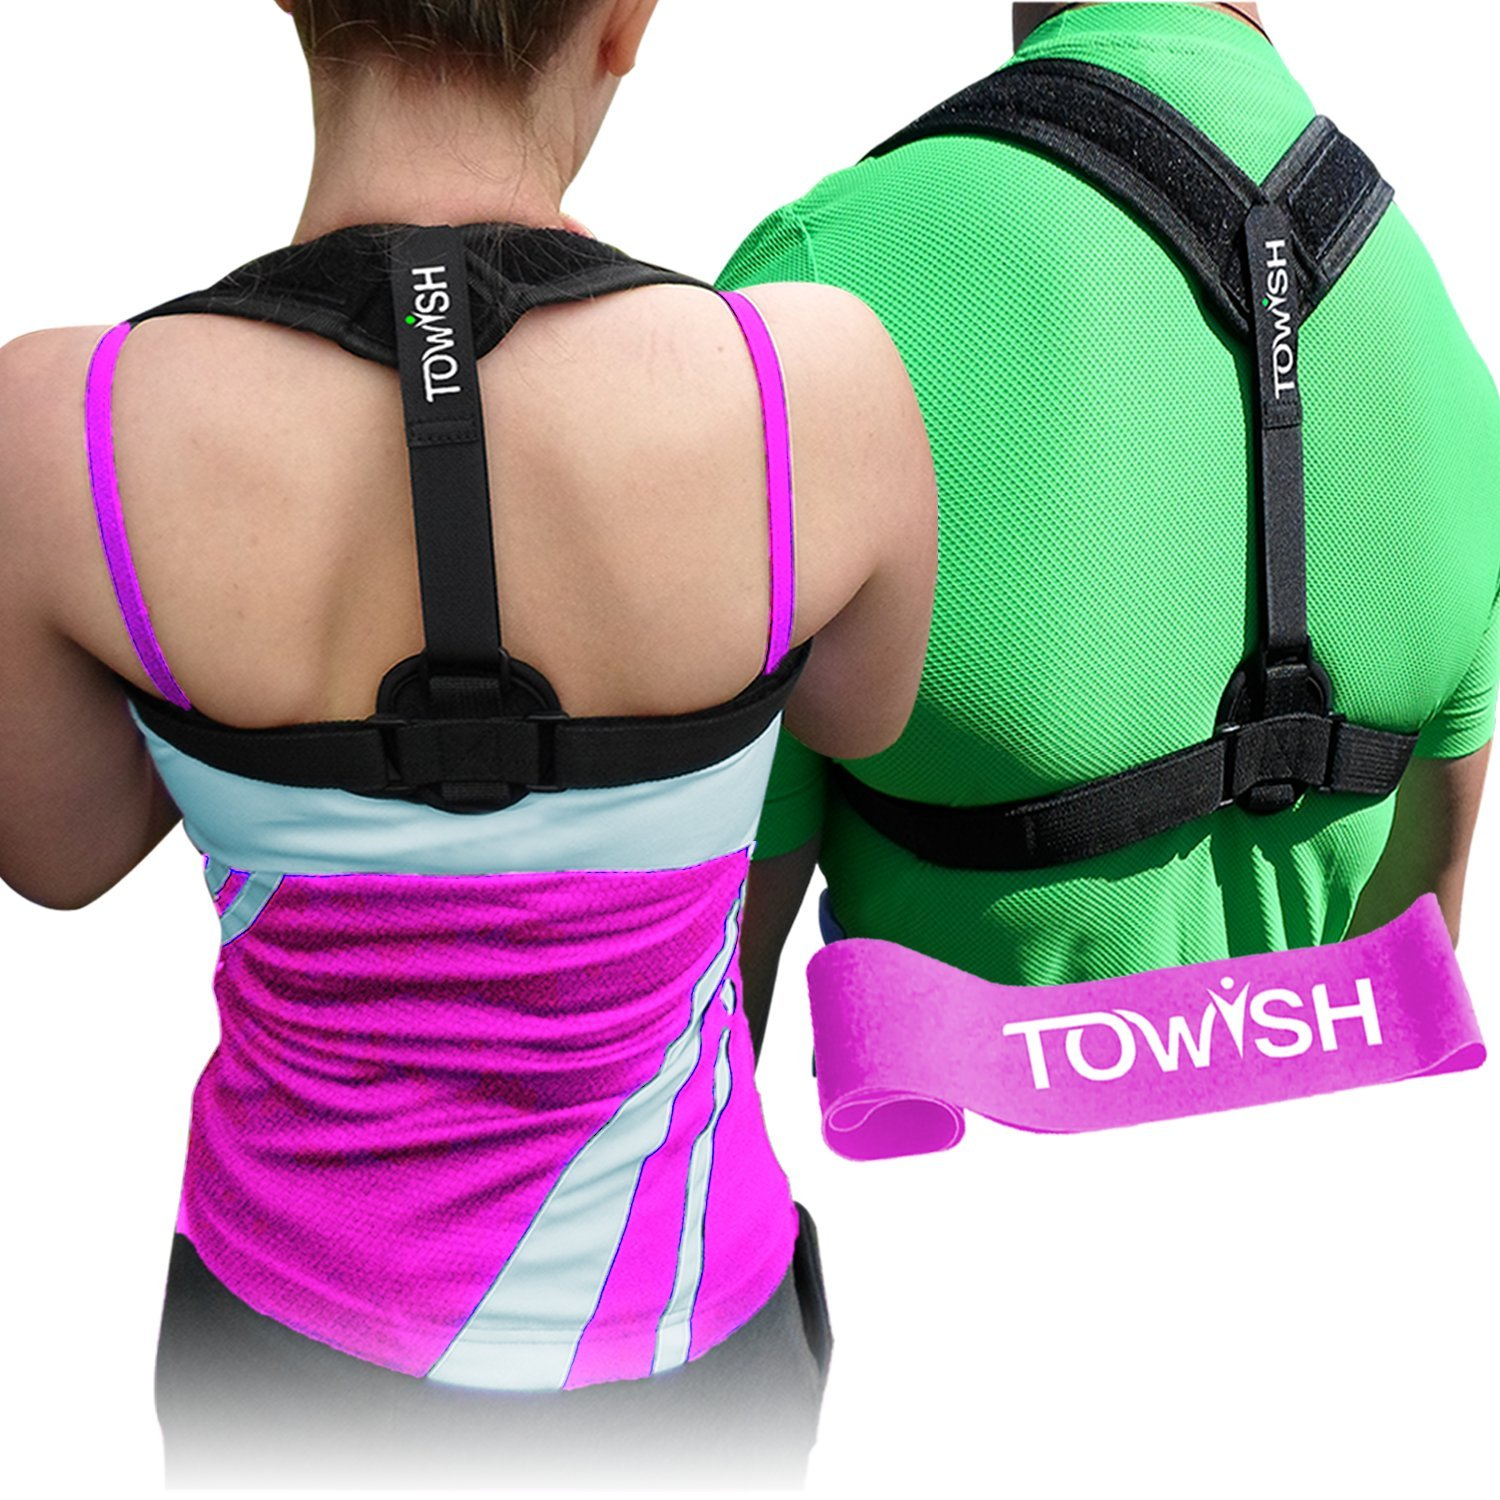 Posture Corrector for Women and Men - Adjustable Back Support - Premium Aid Back Brace Helps with Bad Shoulder,Clavicle Alignment and Cervical Neck Pain - Figure 8 Medical Correction Device